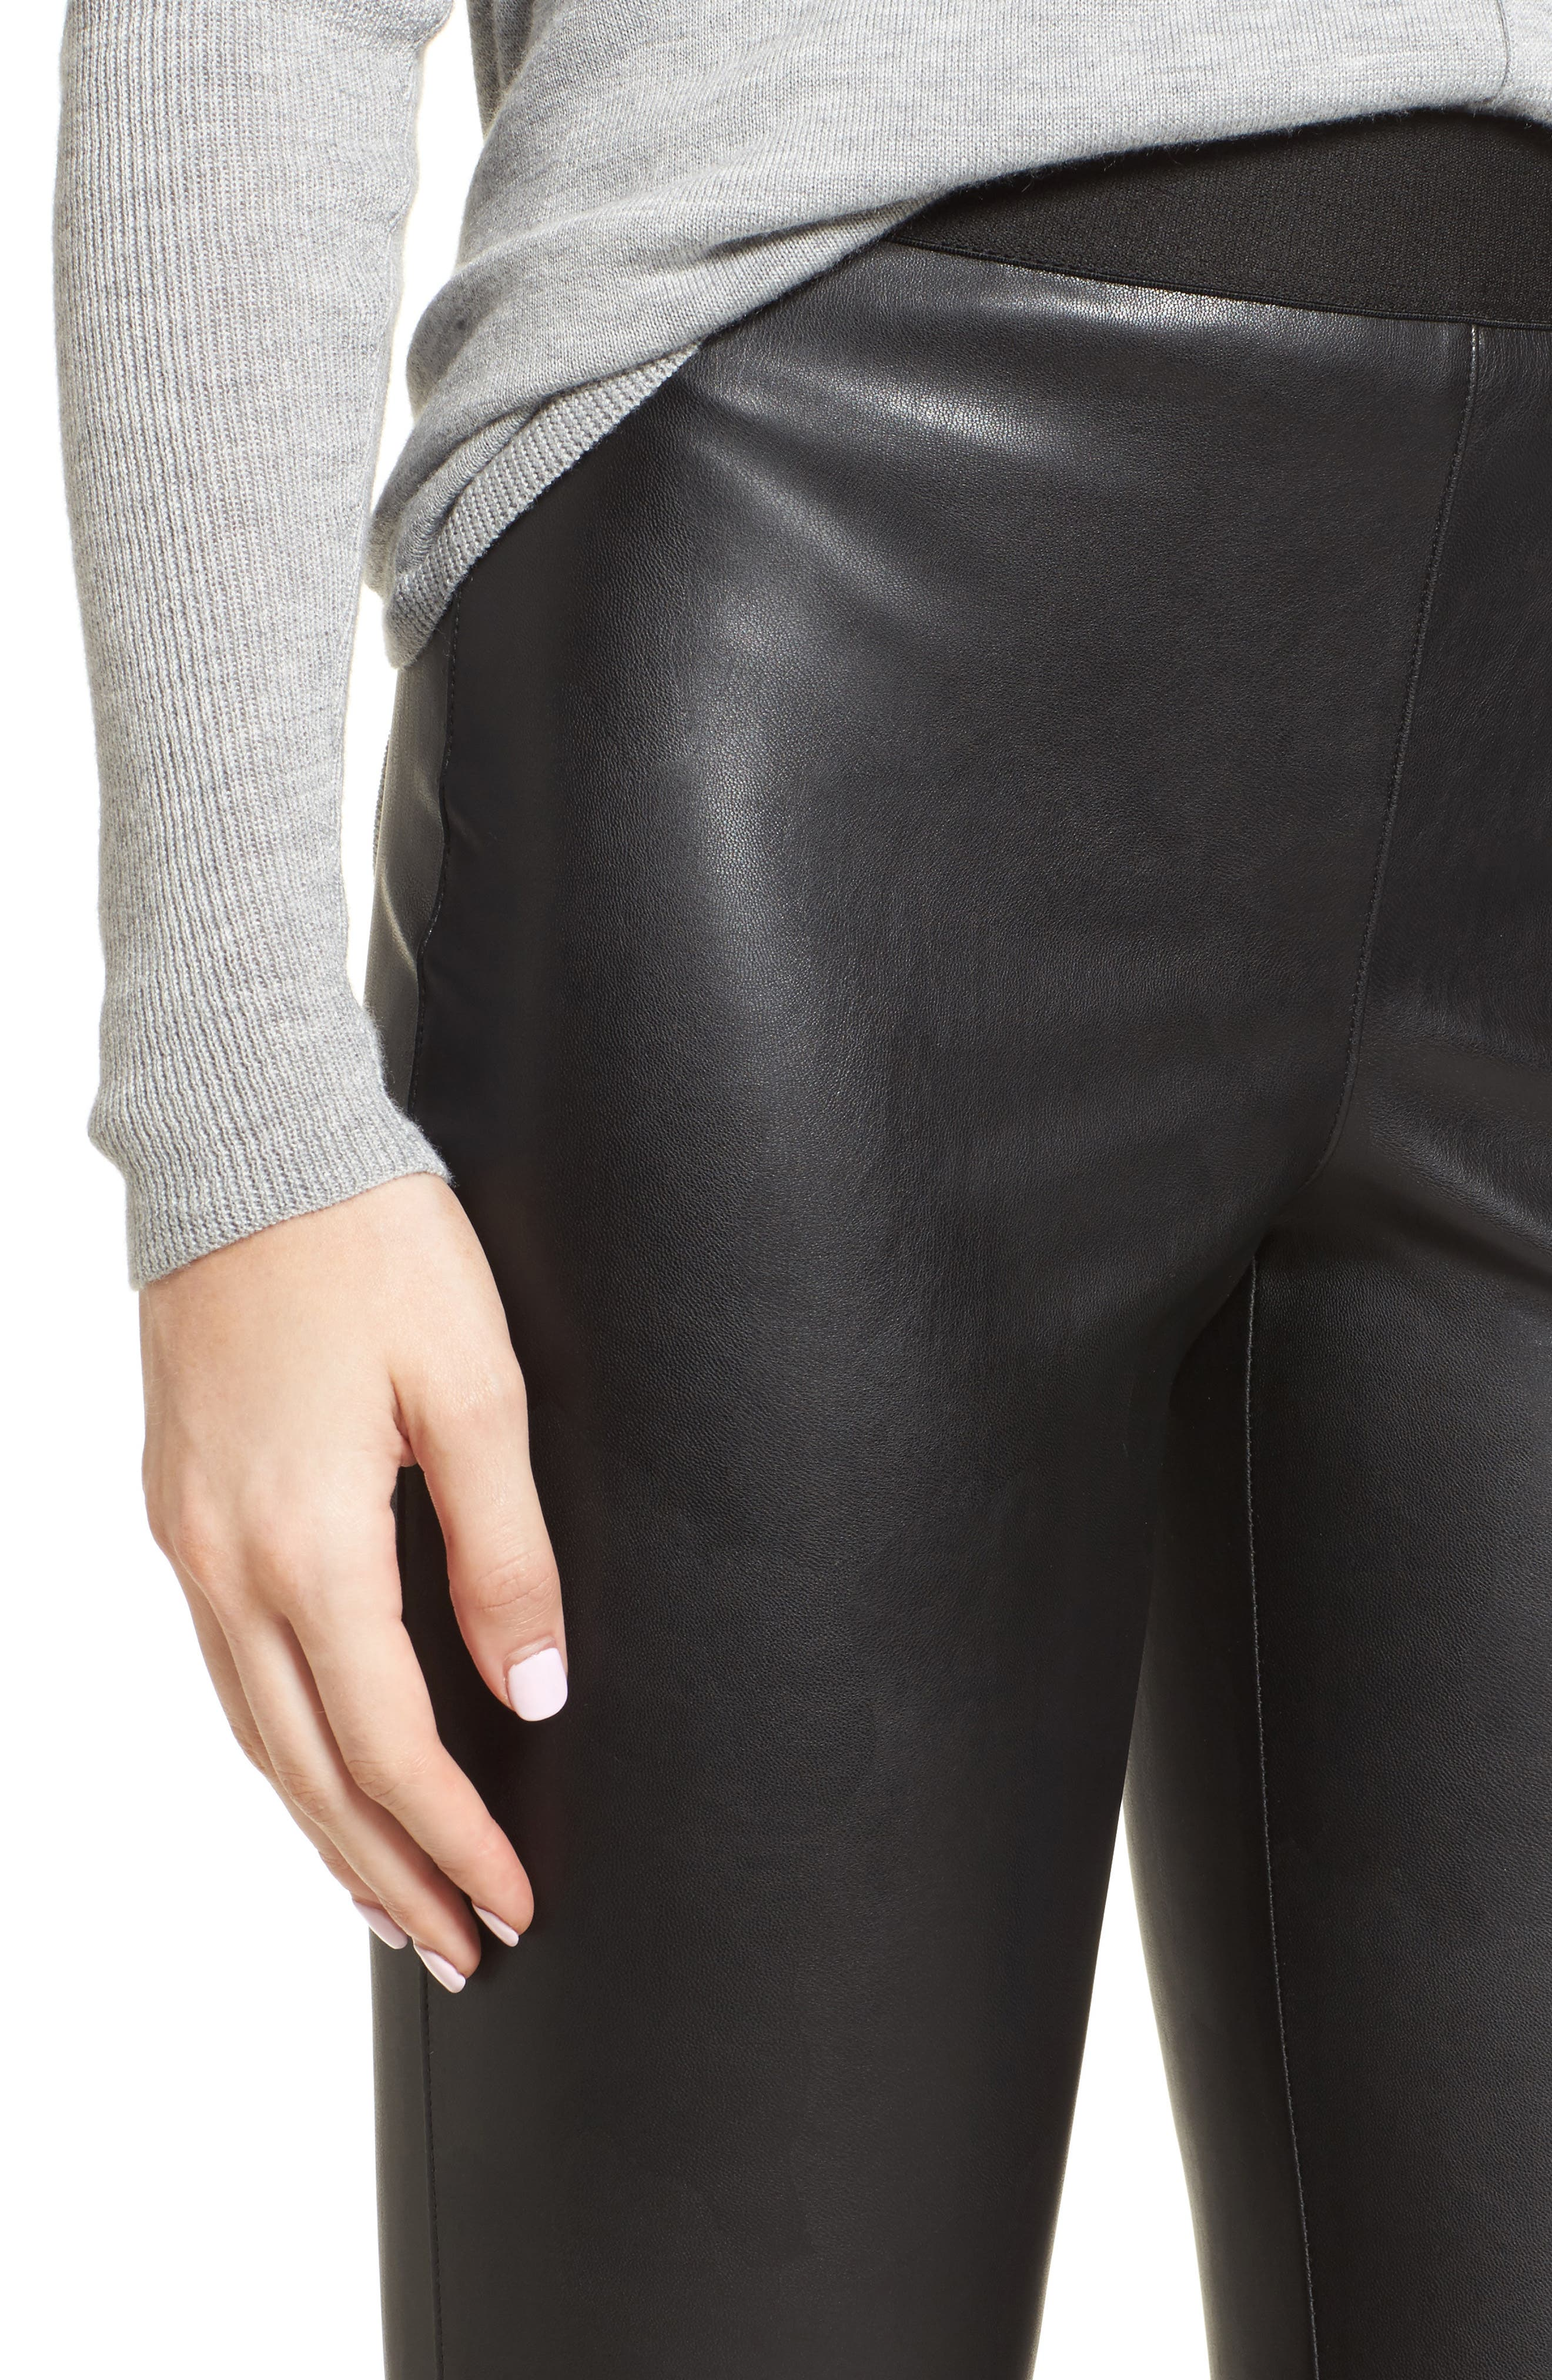 Lupine Crop Flare Faux Leather Pants,                             Alternate thumbnail 4, color,                             001